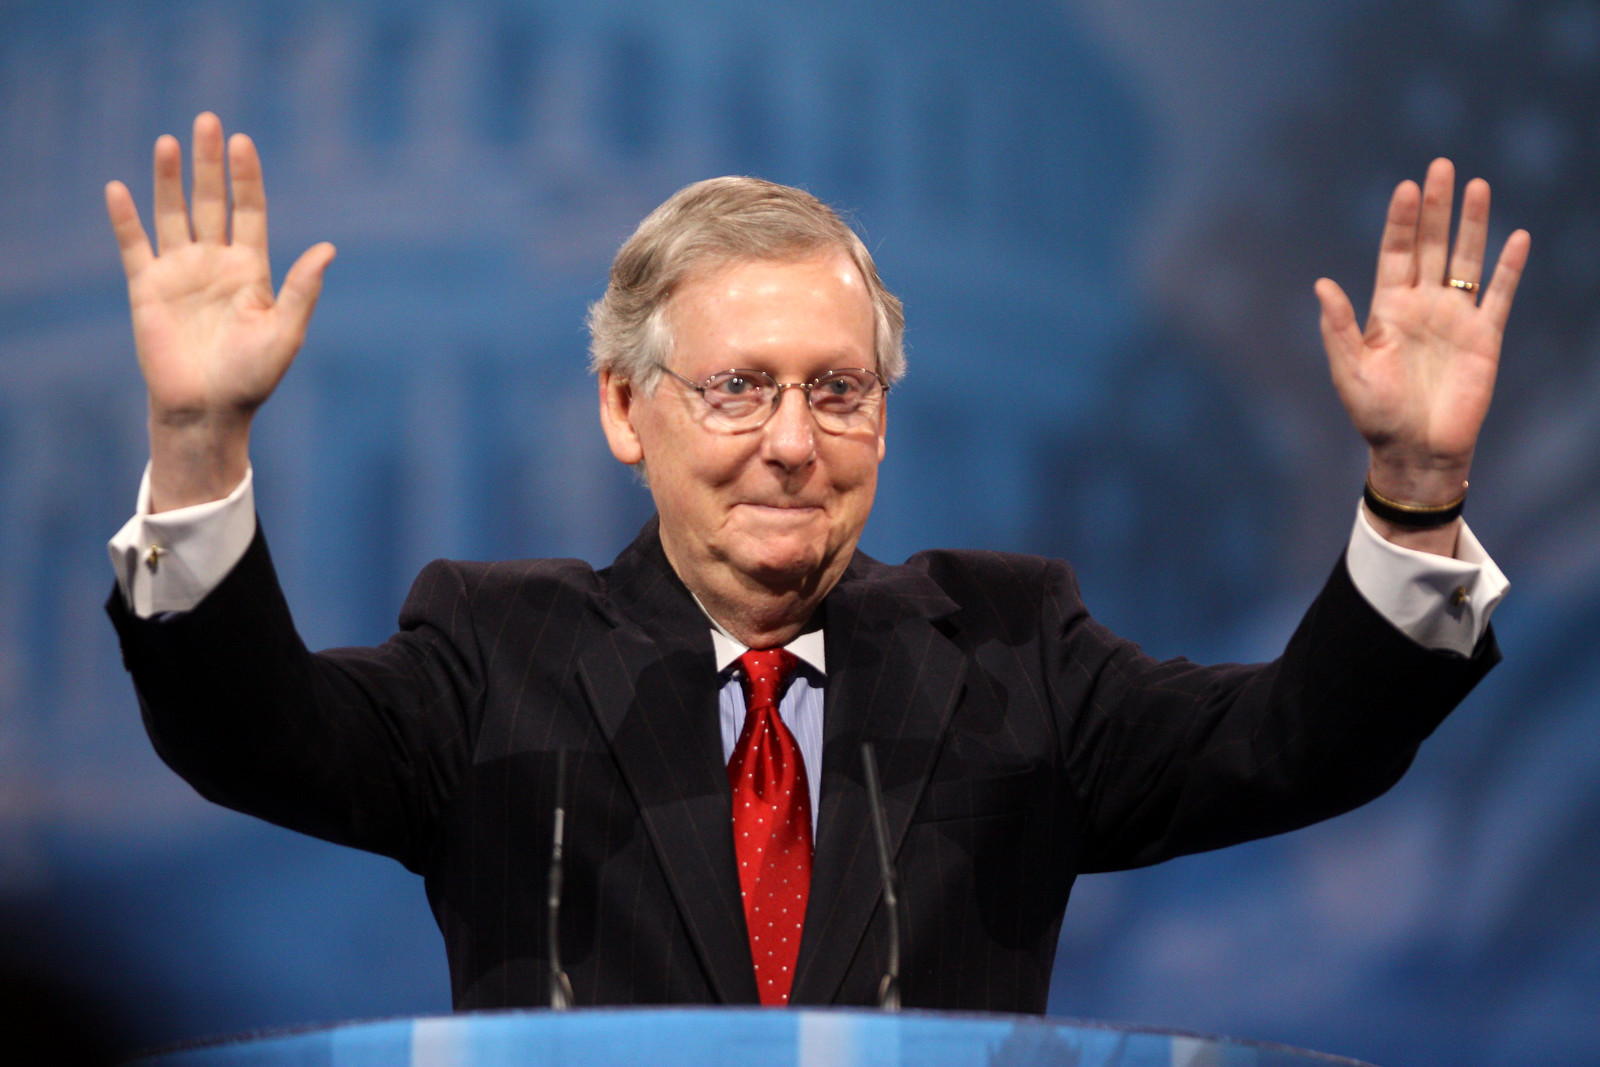 A greying, older man in a dark suit, at a podium, with his hands raised.